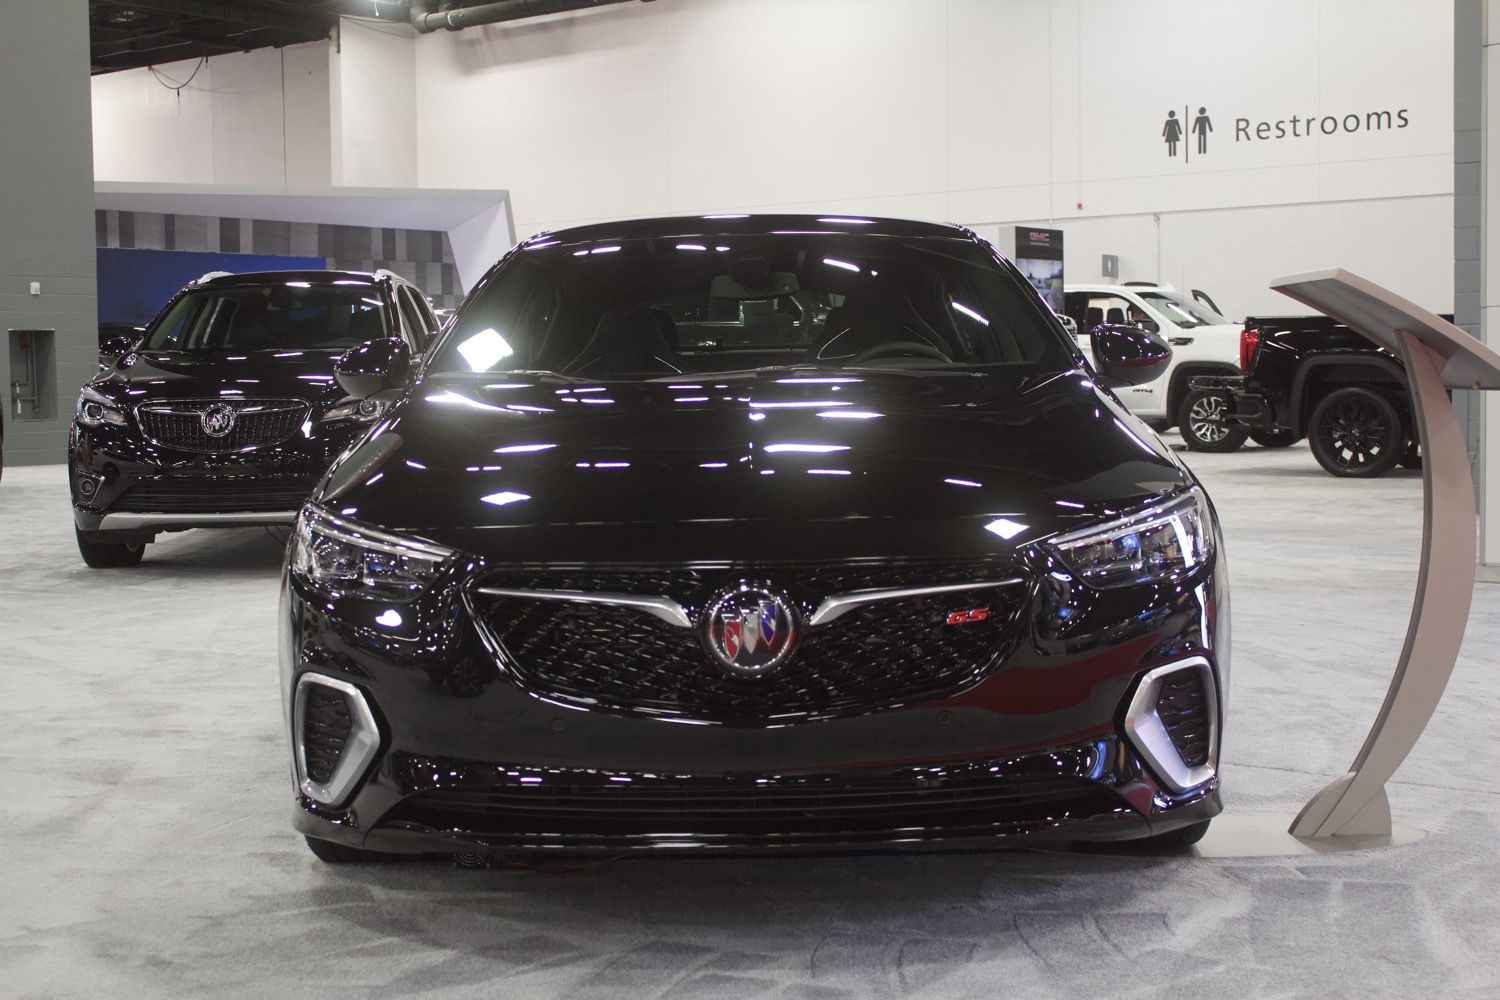 2021 Buick Regal Info, Specs, Wiki | Gm Authority Where Is The New 2021 Buick Regal Built